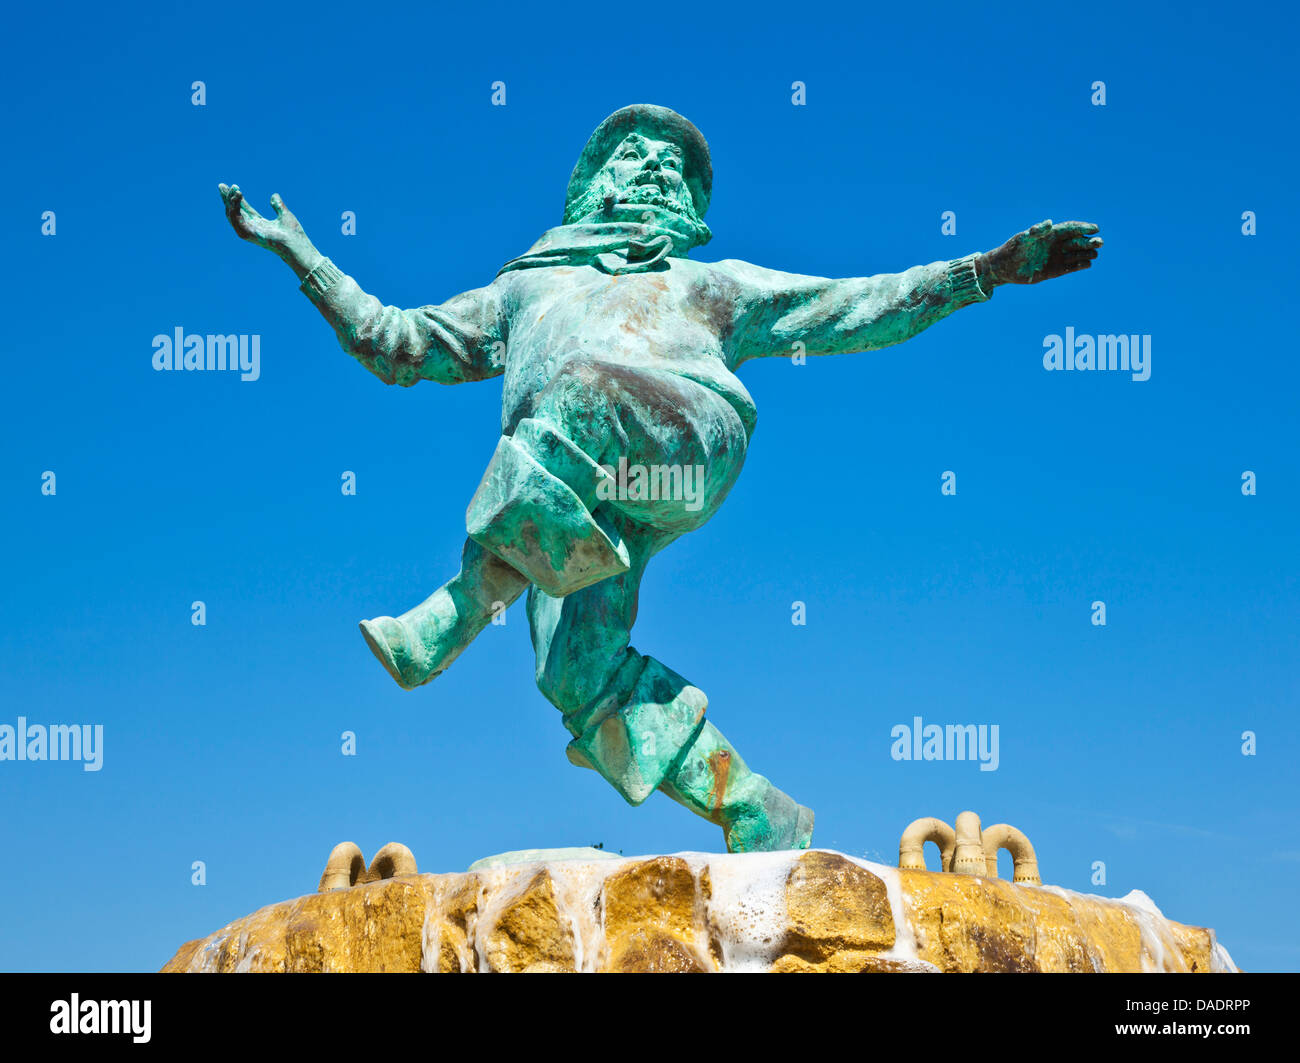 Statue de pêcheur Jolly Tour de Skegness Lincolnshire Jardins england UK GB EU Europe Photo Stock